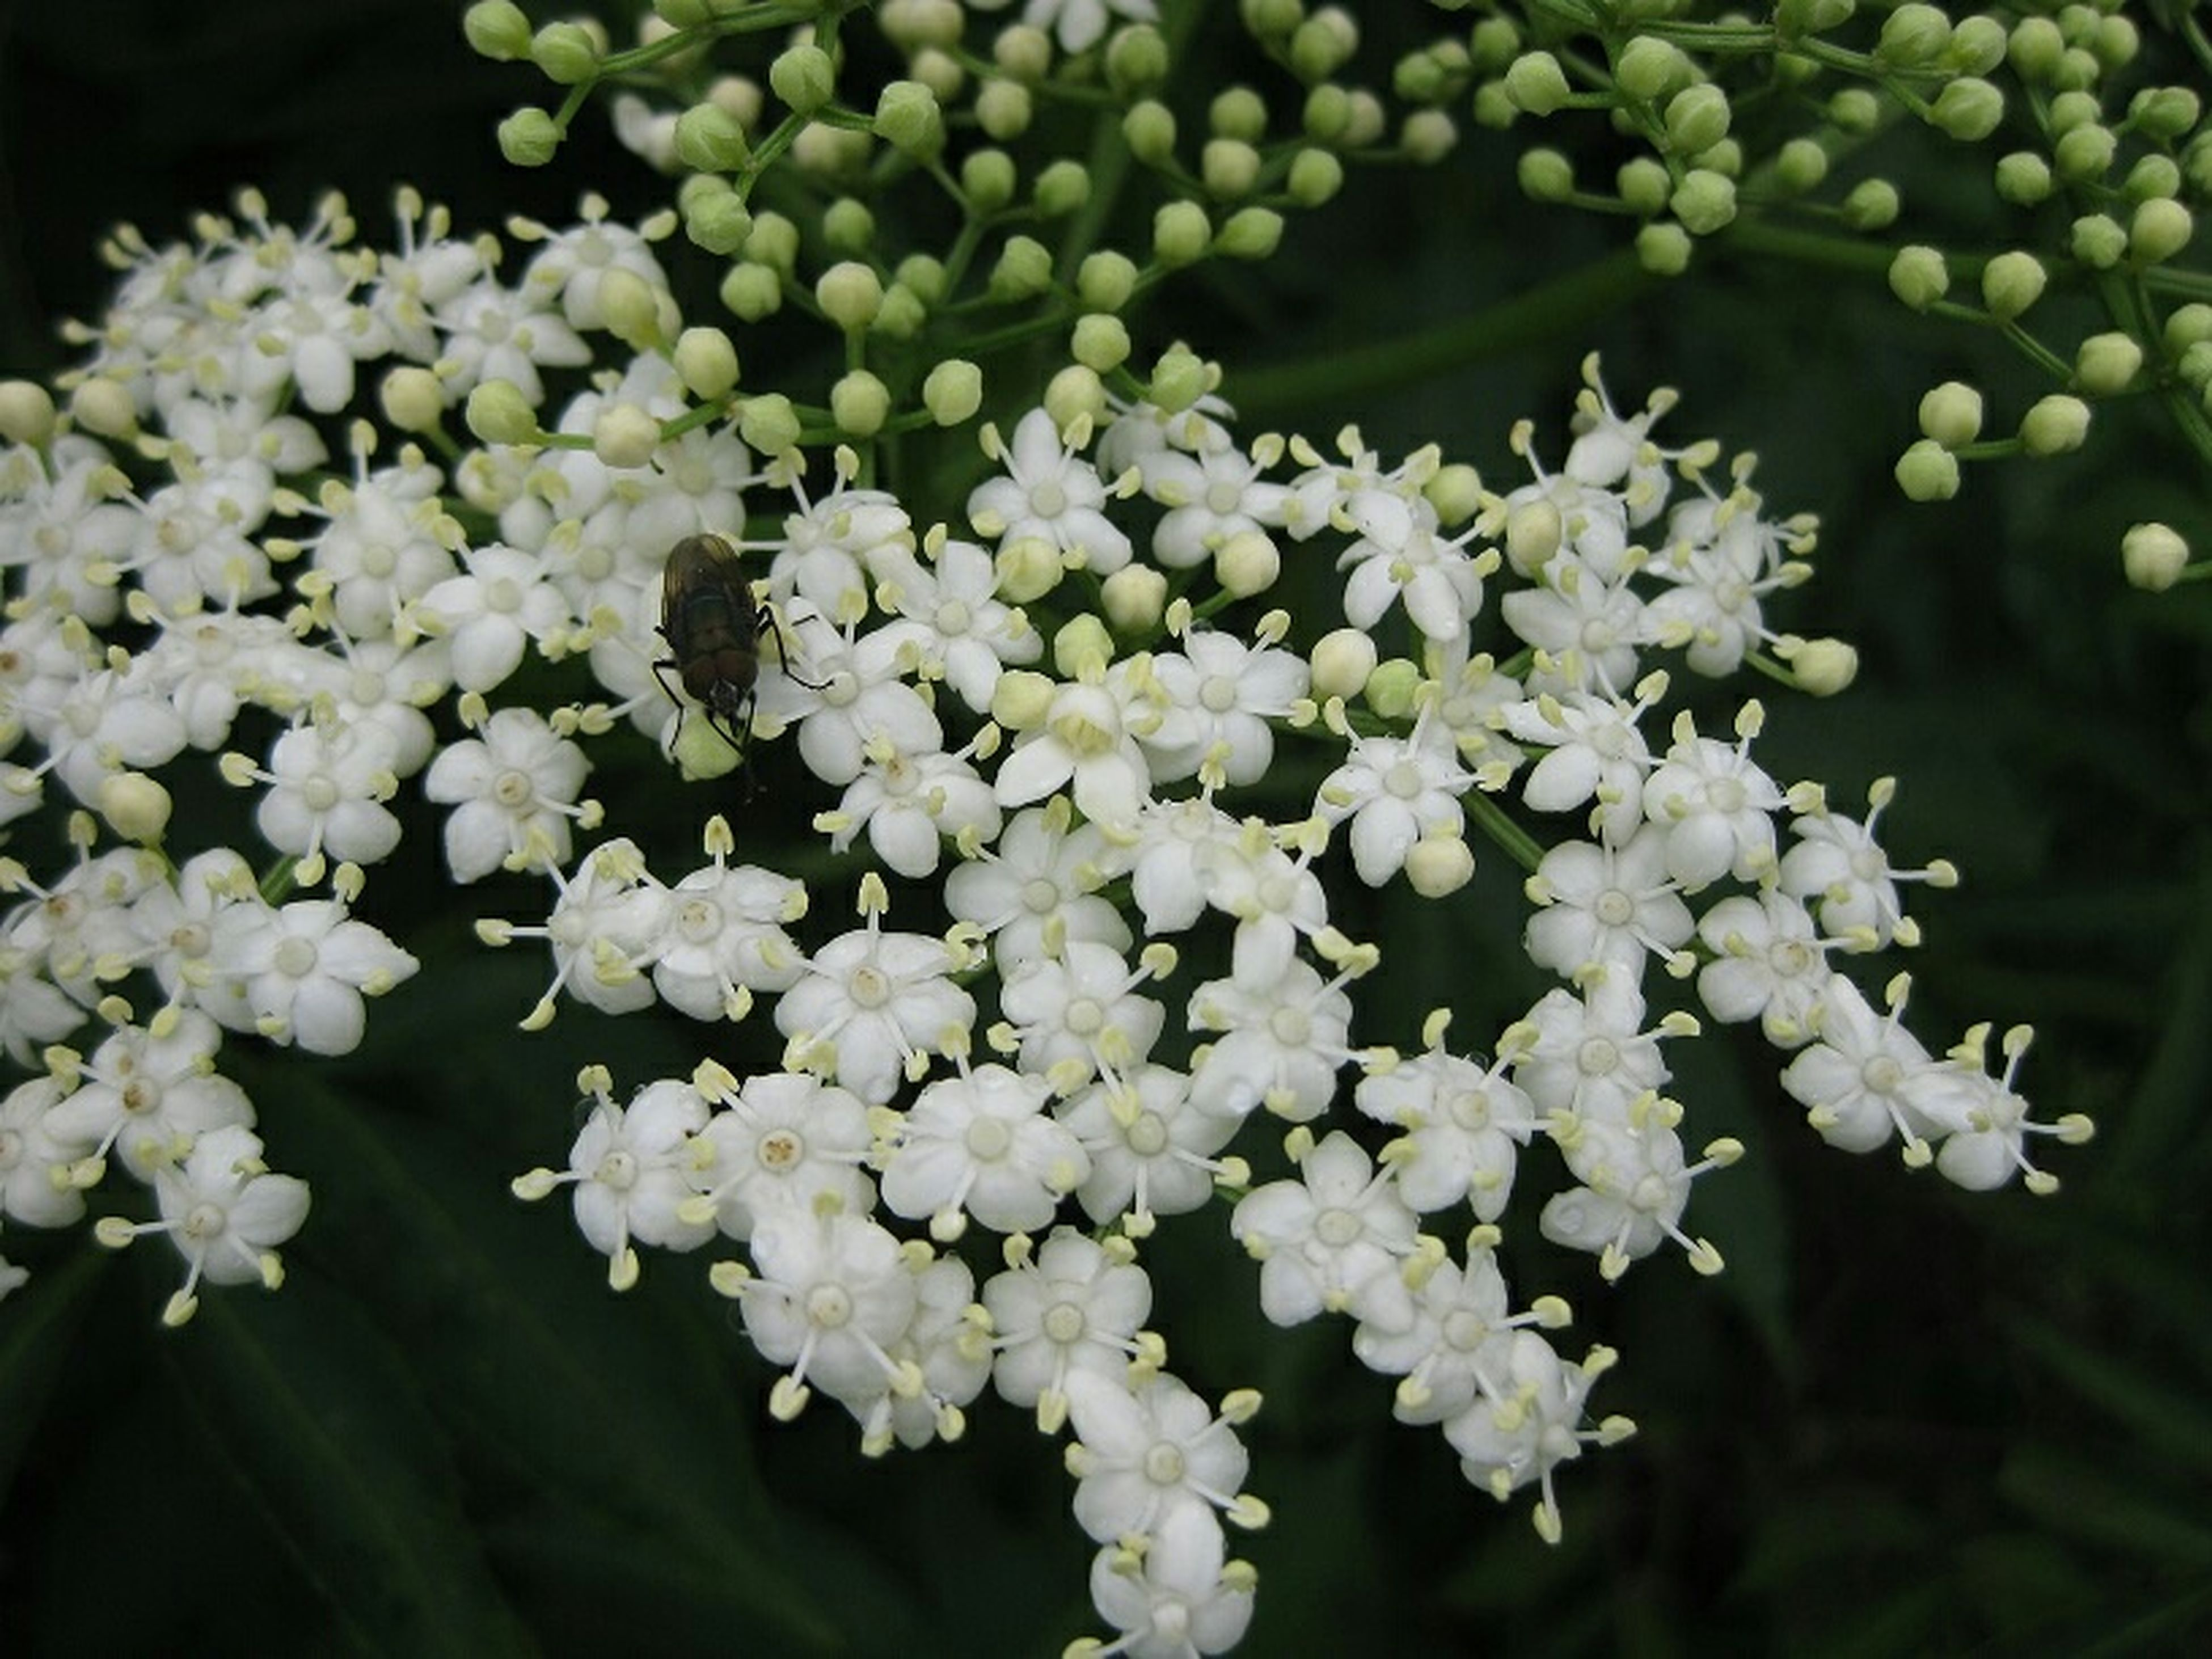 freshness, flower, growth, white color, fragility, nature, beauty in nature, close-up, plant, petal, abundance, focus on foreground, blooming, flower head, outdoors, no people, green color, leaf, selective focus, day